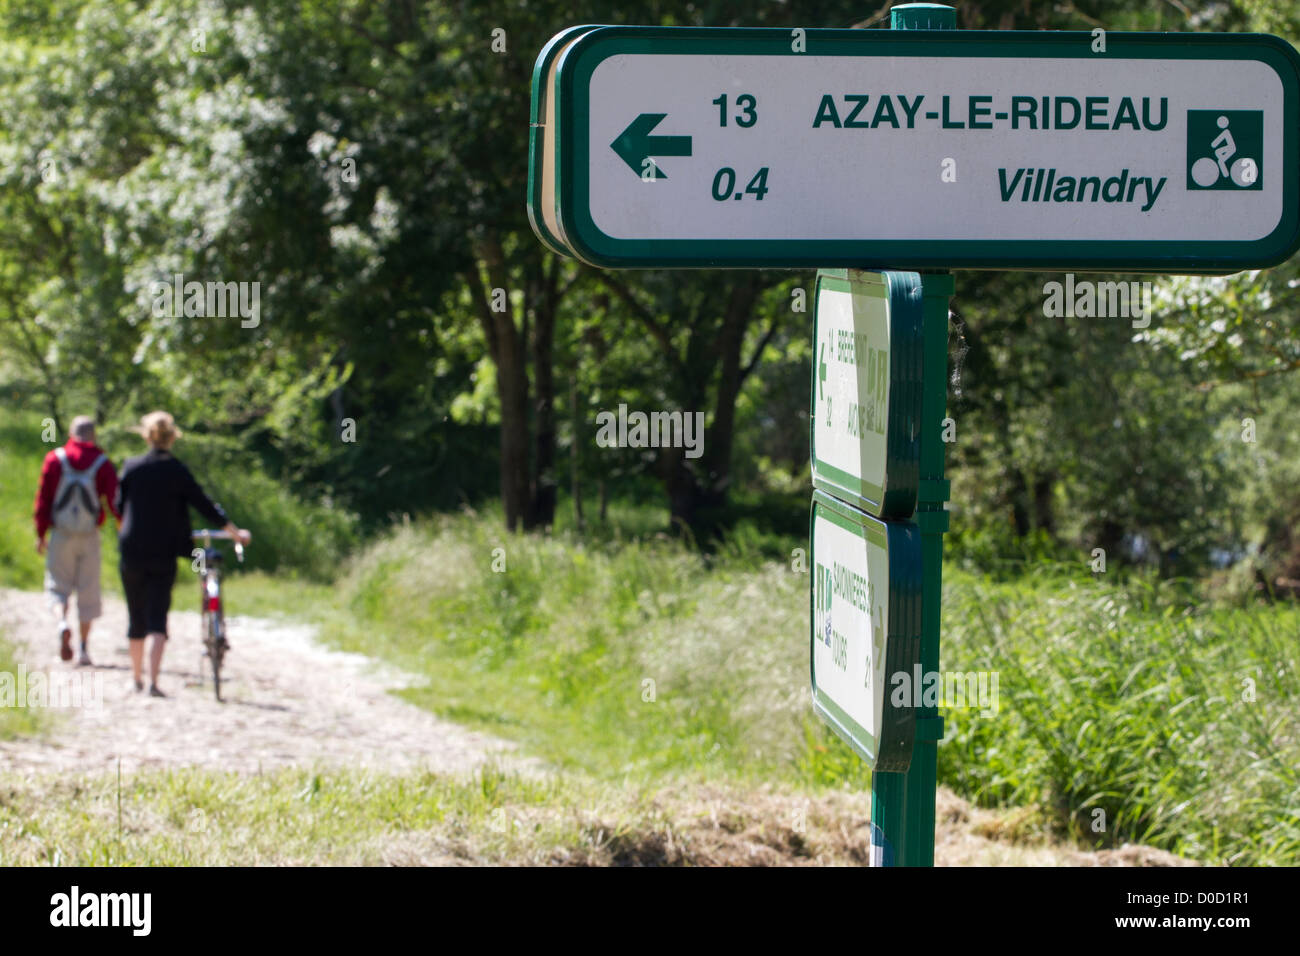 SIGN FOR THE 'LOIRE A VELO' CYCLING ITINERARY VILLANDRY INDRE-ET-LOIRE (37) FRANCE - Stock Image